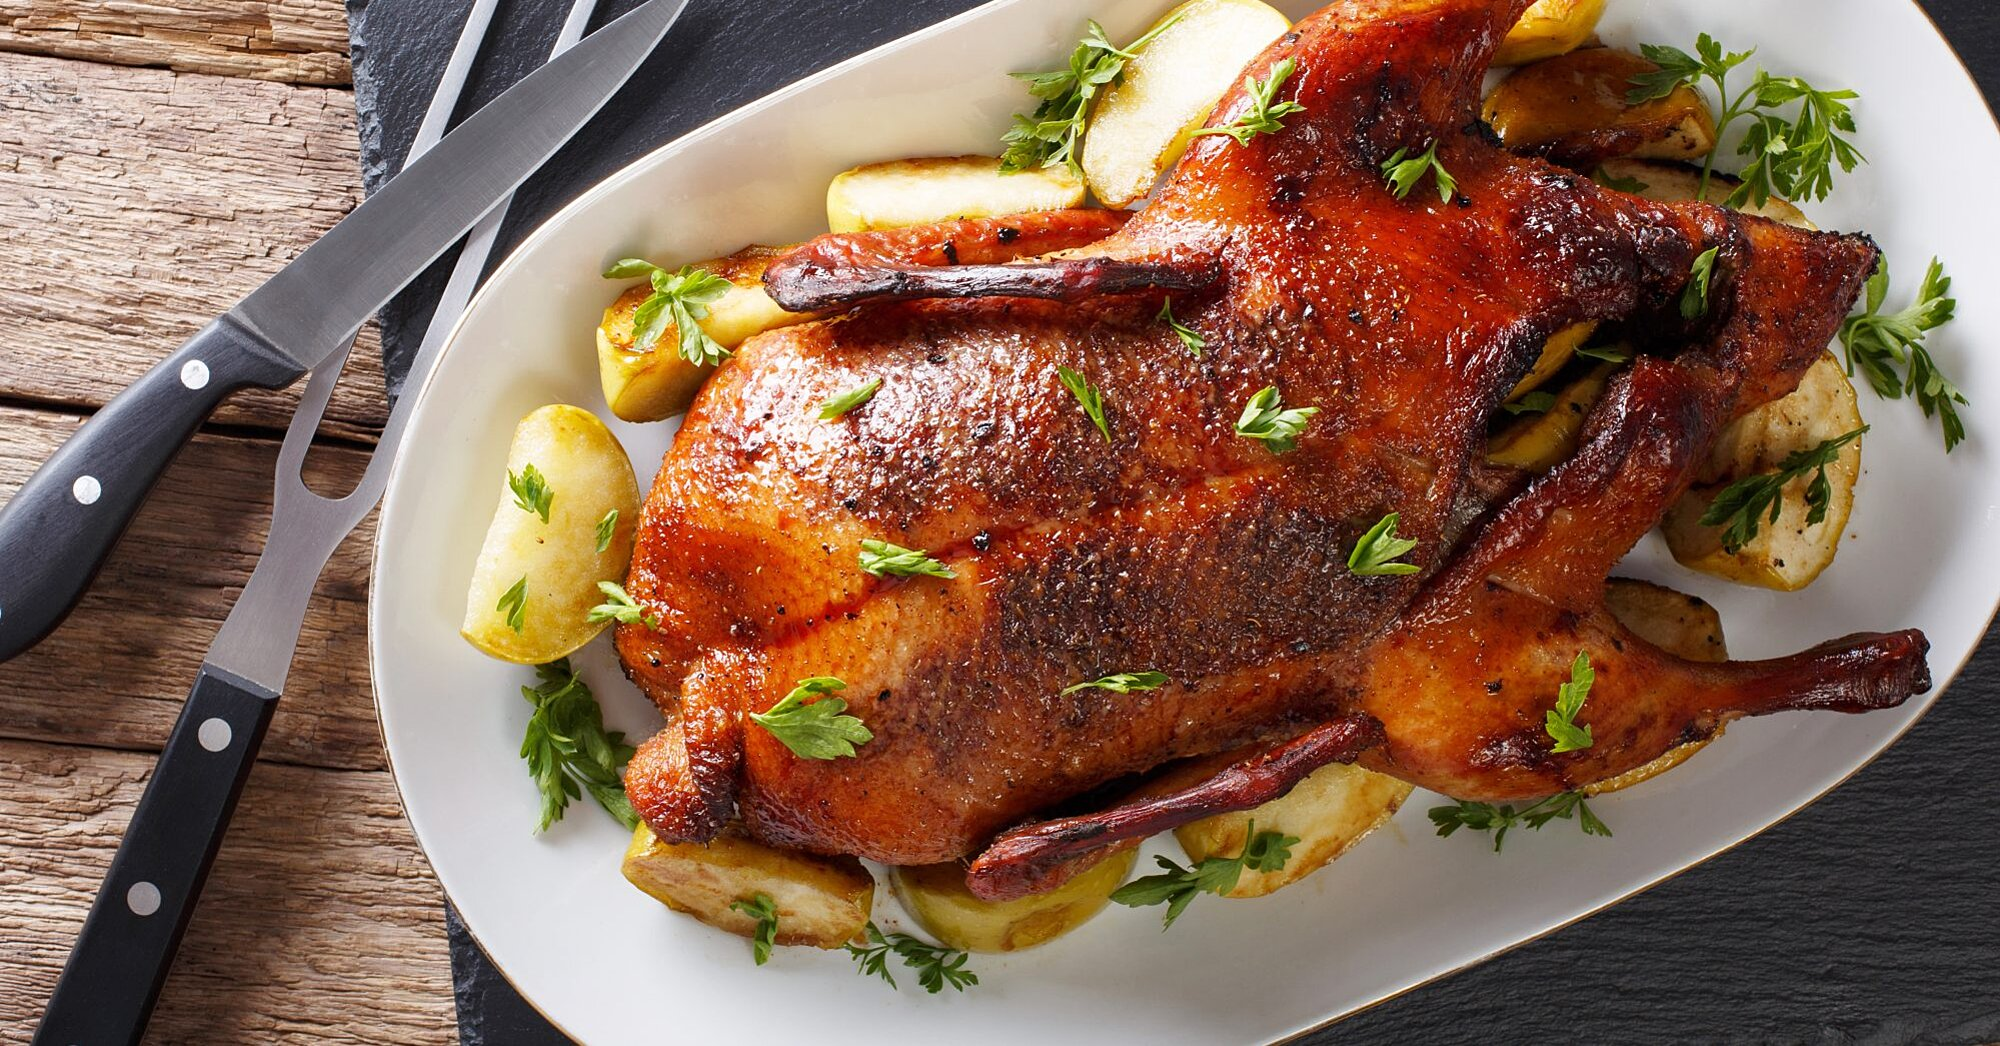 Not Feeling (or Finding) Turkey This Year? Here Are 5 Alternative Birds to Consider Roasting for Thanksgiving